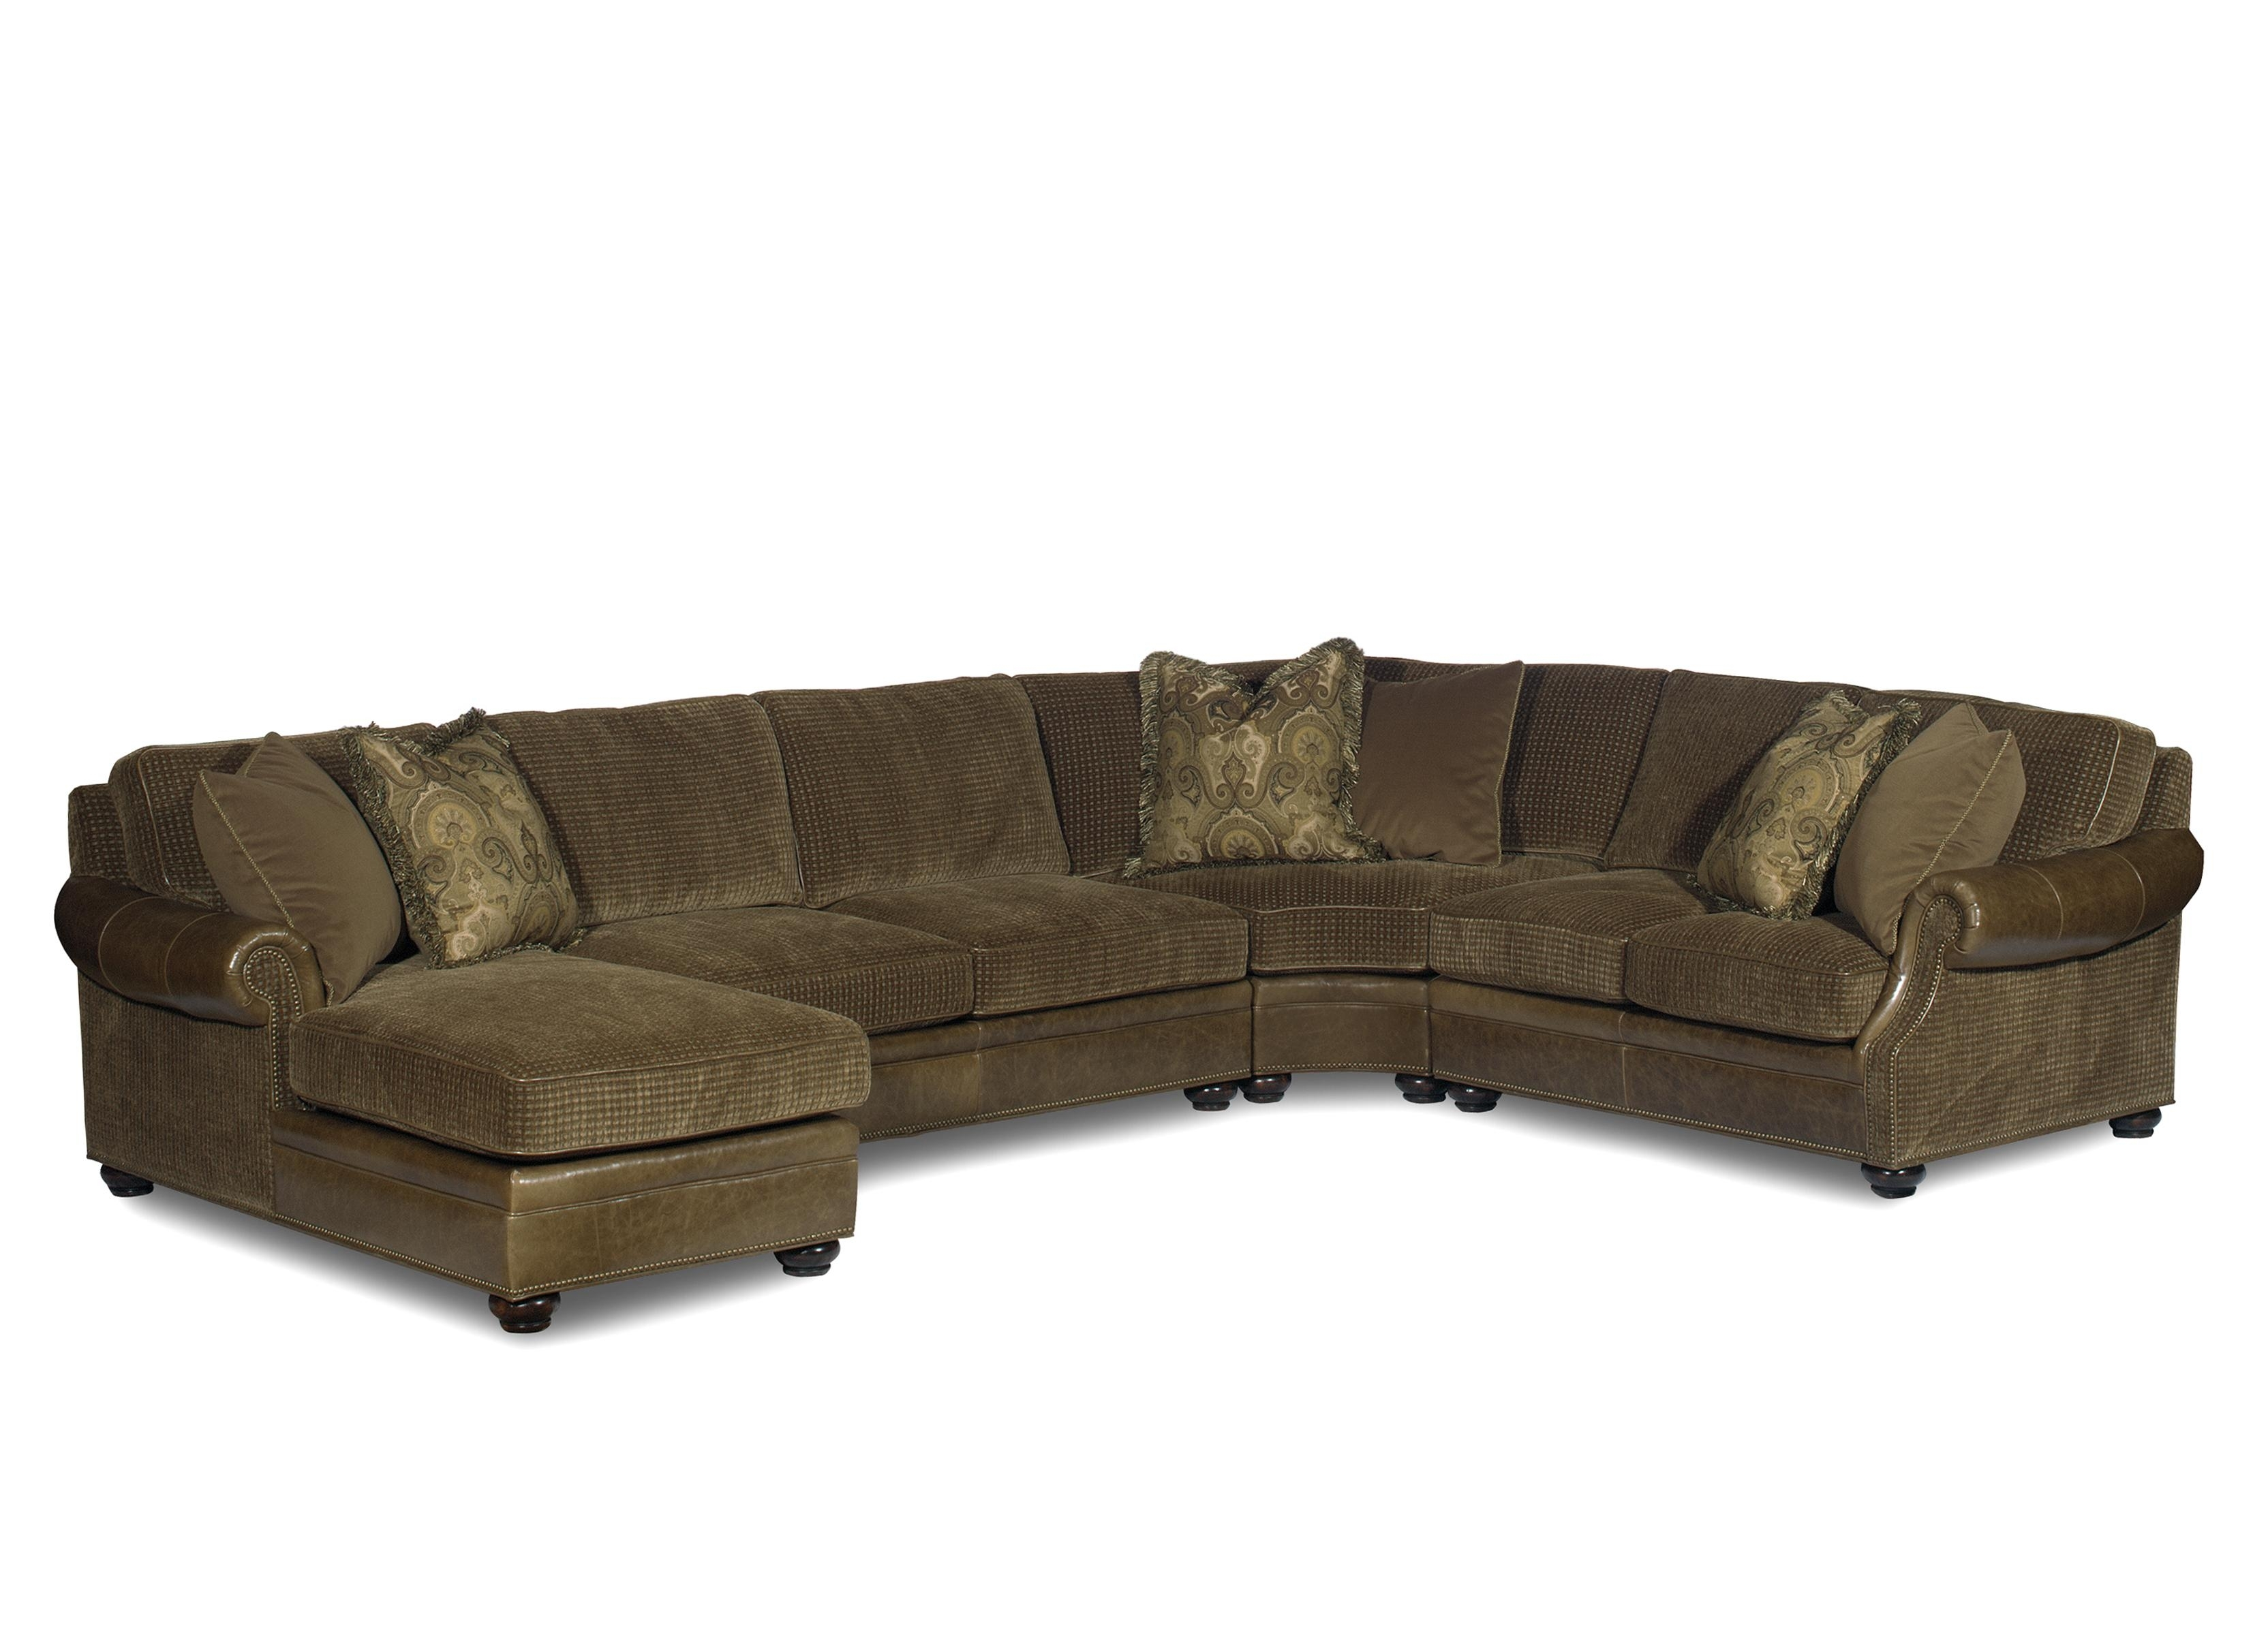 Bradington Young Warner Sectional Sofa With Chaise Lounger – Ahfa With Visalia Ca Sectional Sofas (Image 4 of 10)